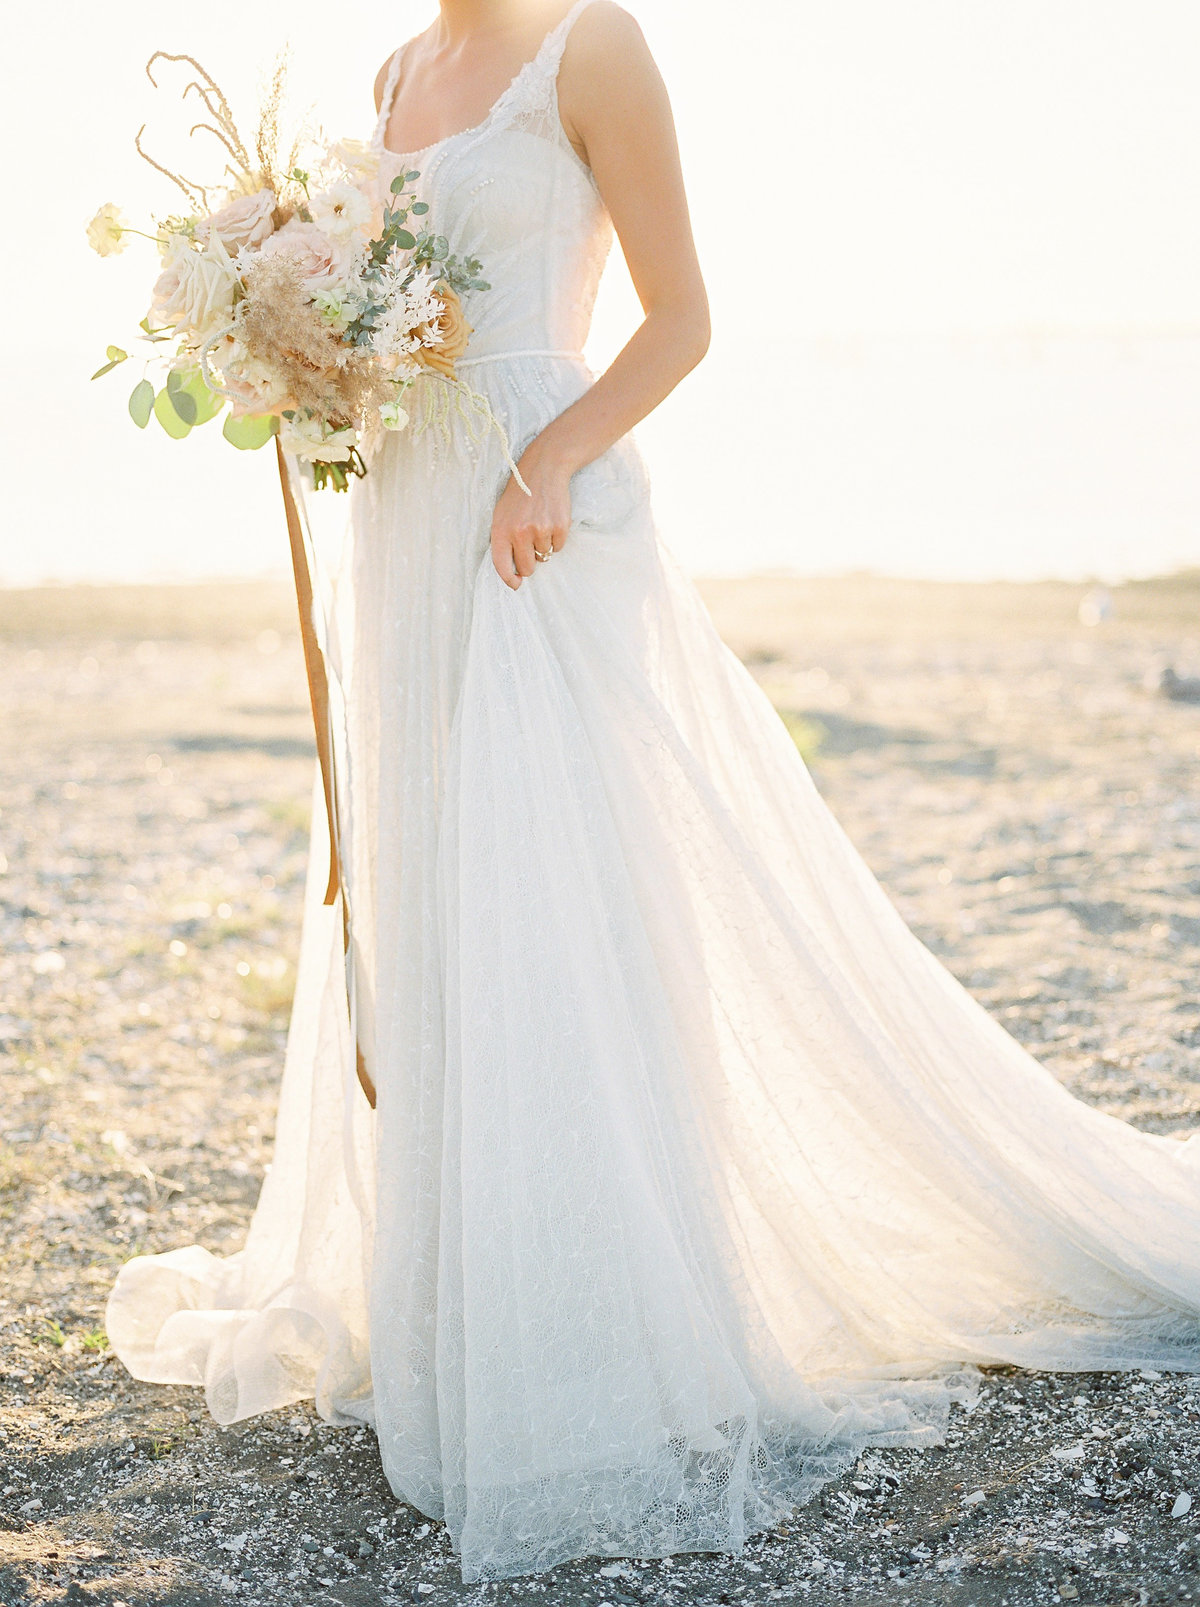 Teryn Lee Photography-Vancouver Beach Wedding12